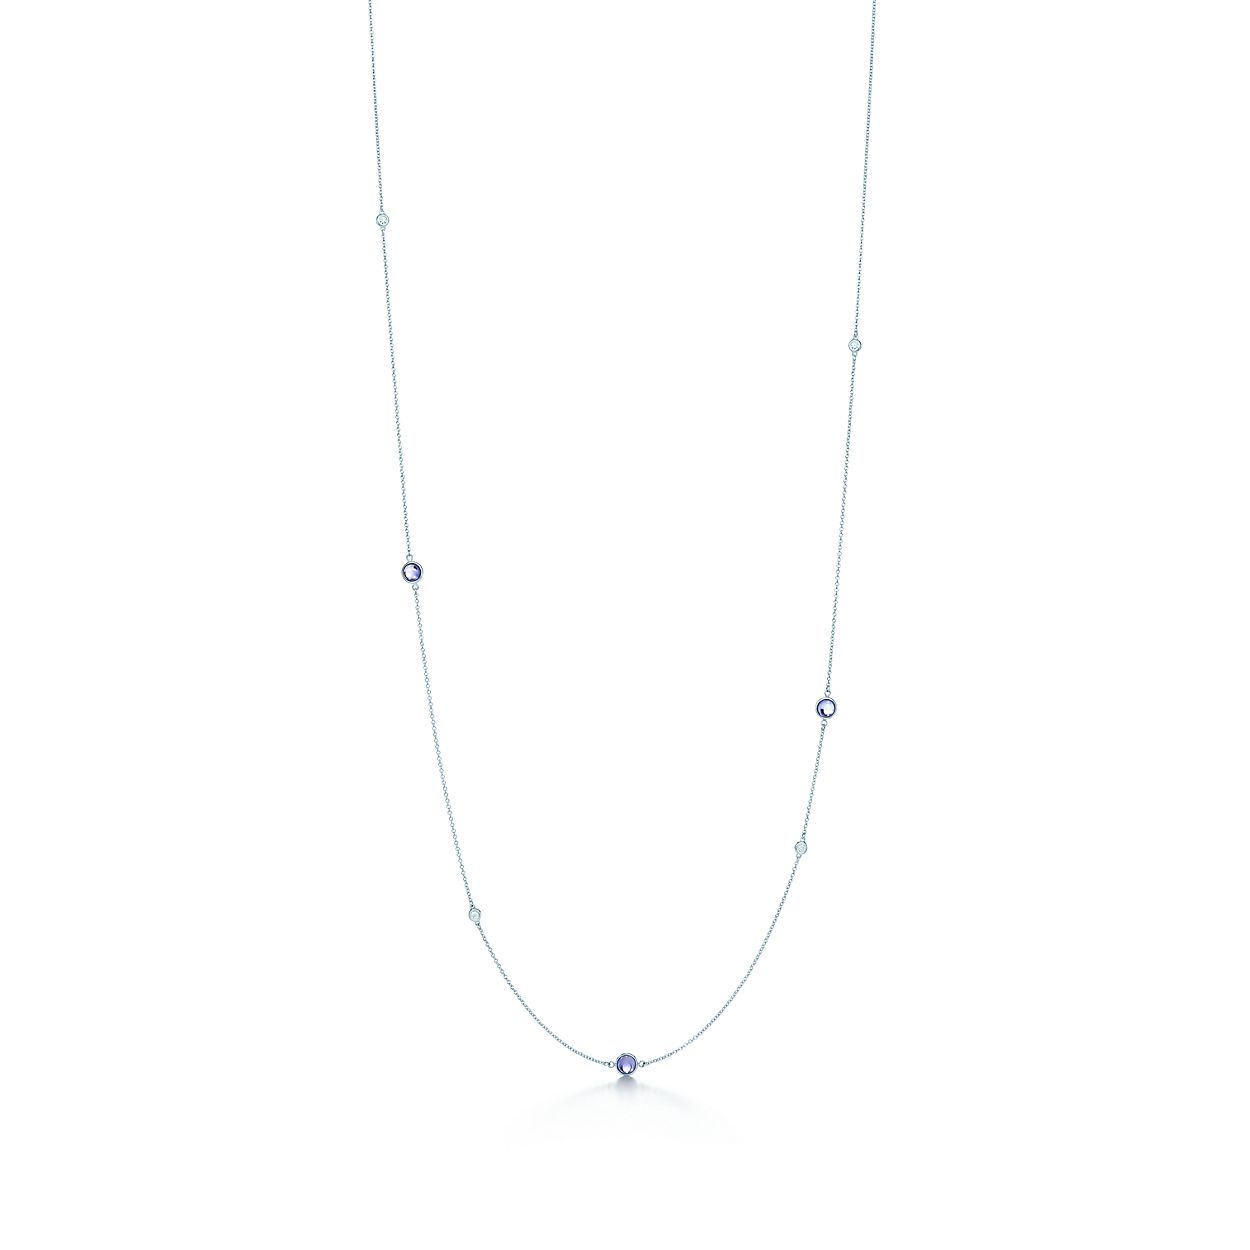 Elsa Peretti Color by the Yard necklace in silver with tanzanite and diamonds Tiffany & Co. bETsDXmW7l